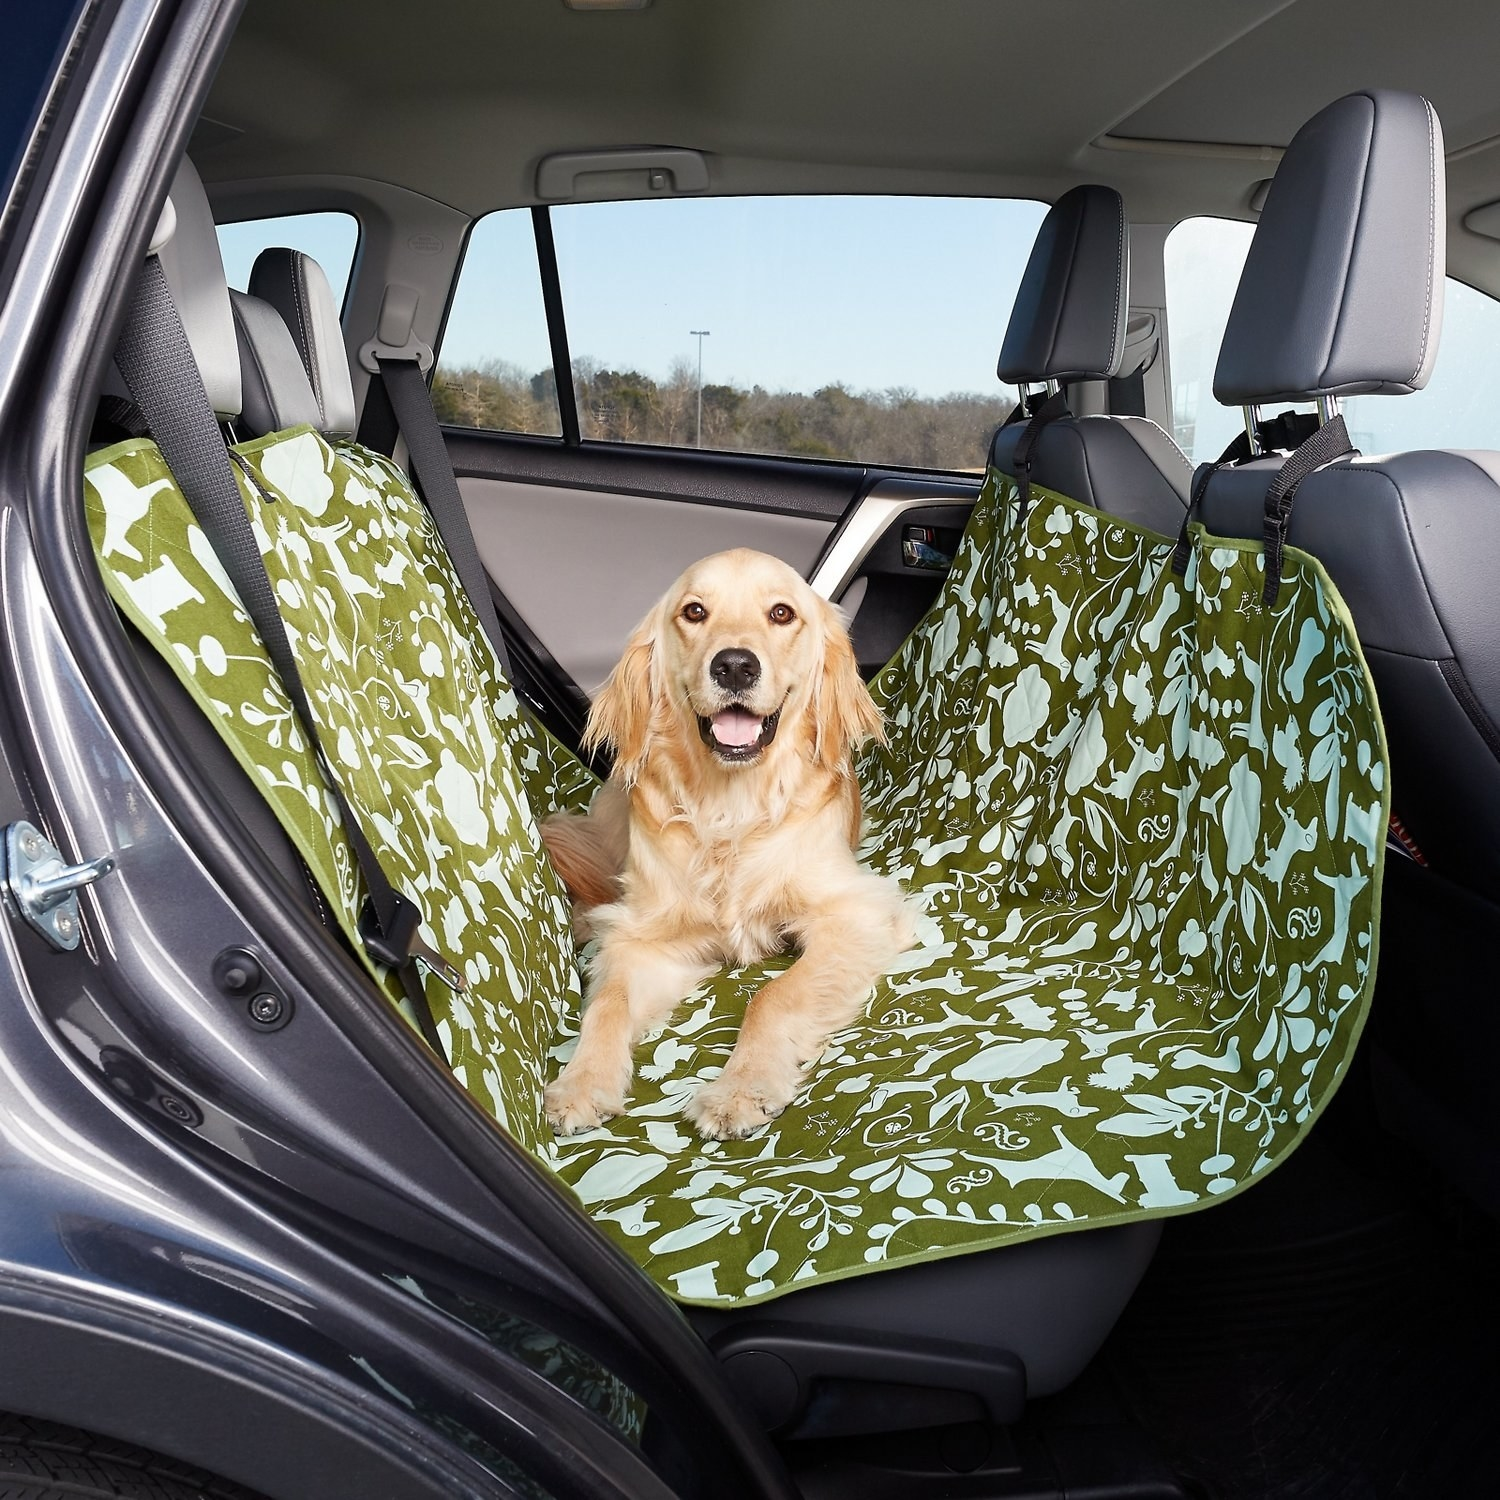 green and white patterned fabric covering a car's backseat attached to both sets of headrests with a golden retriever on it